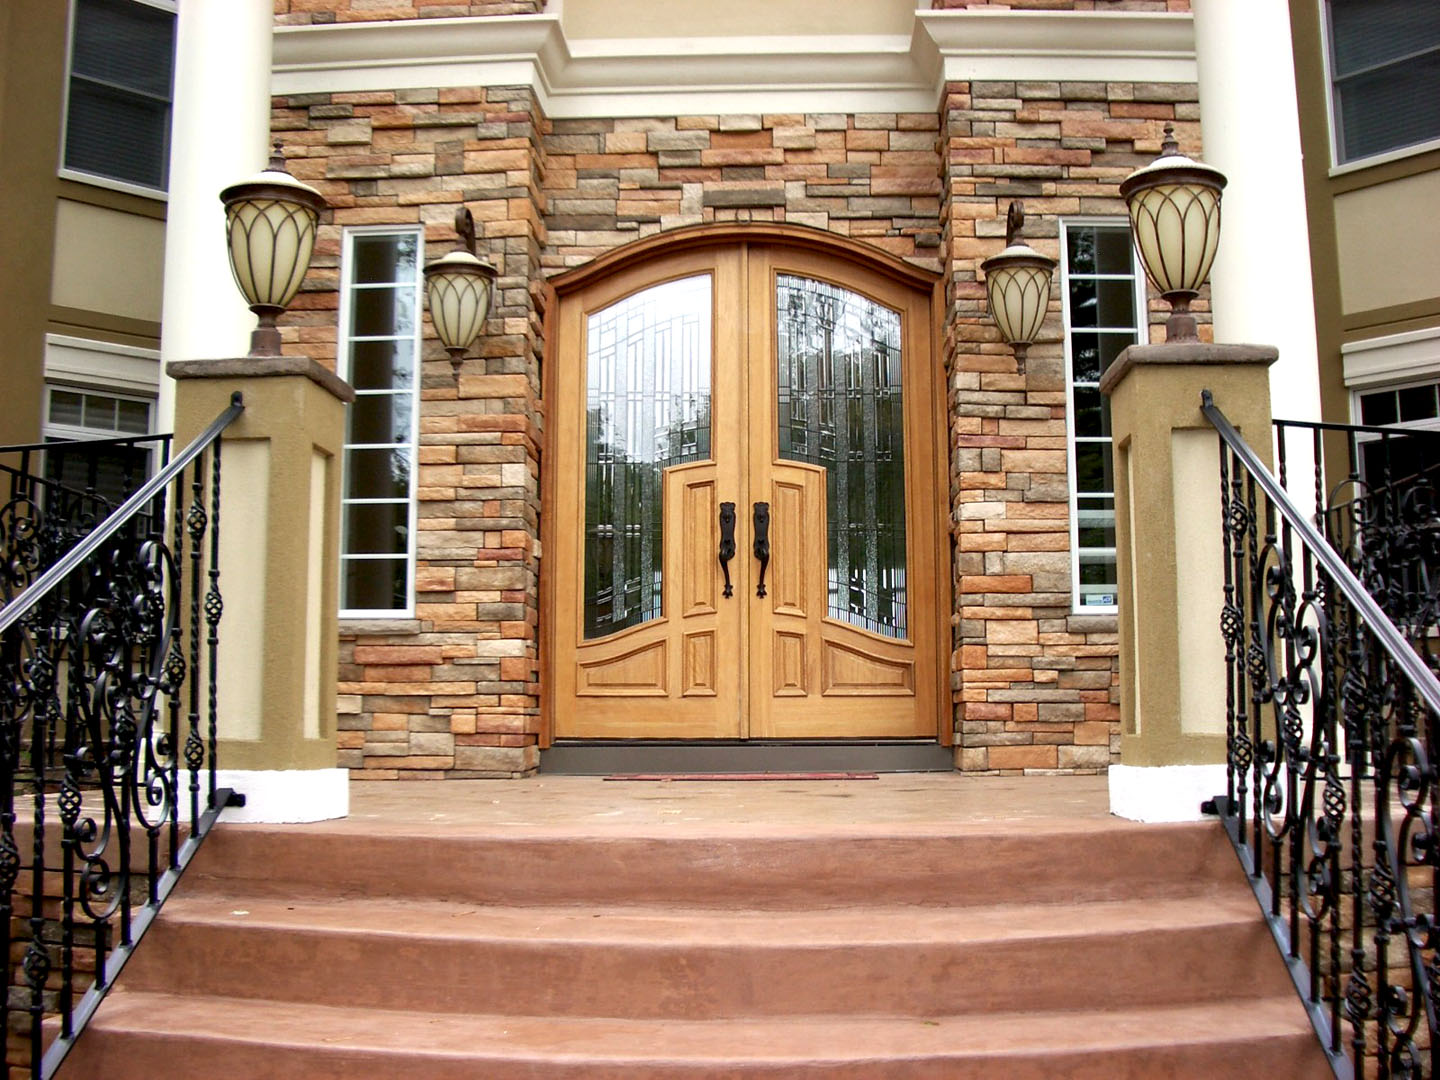 Entry Doors Buy Buy a relaible entry door with these shopping